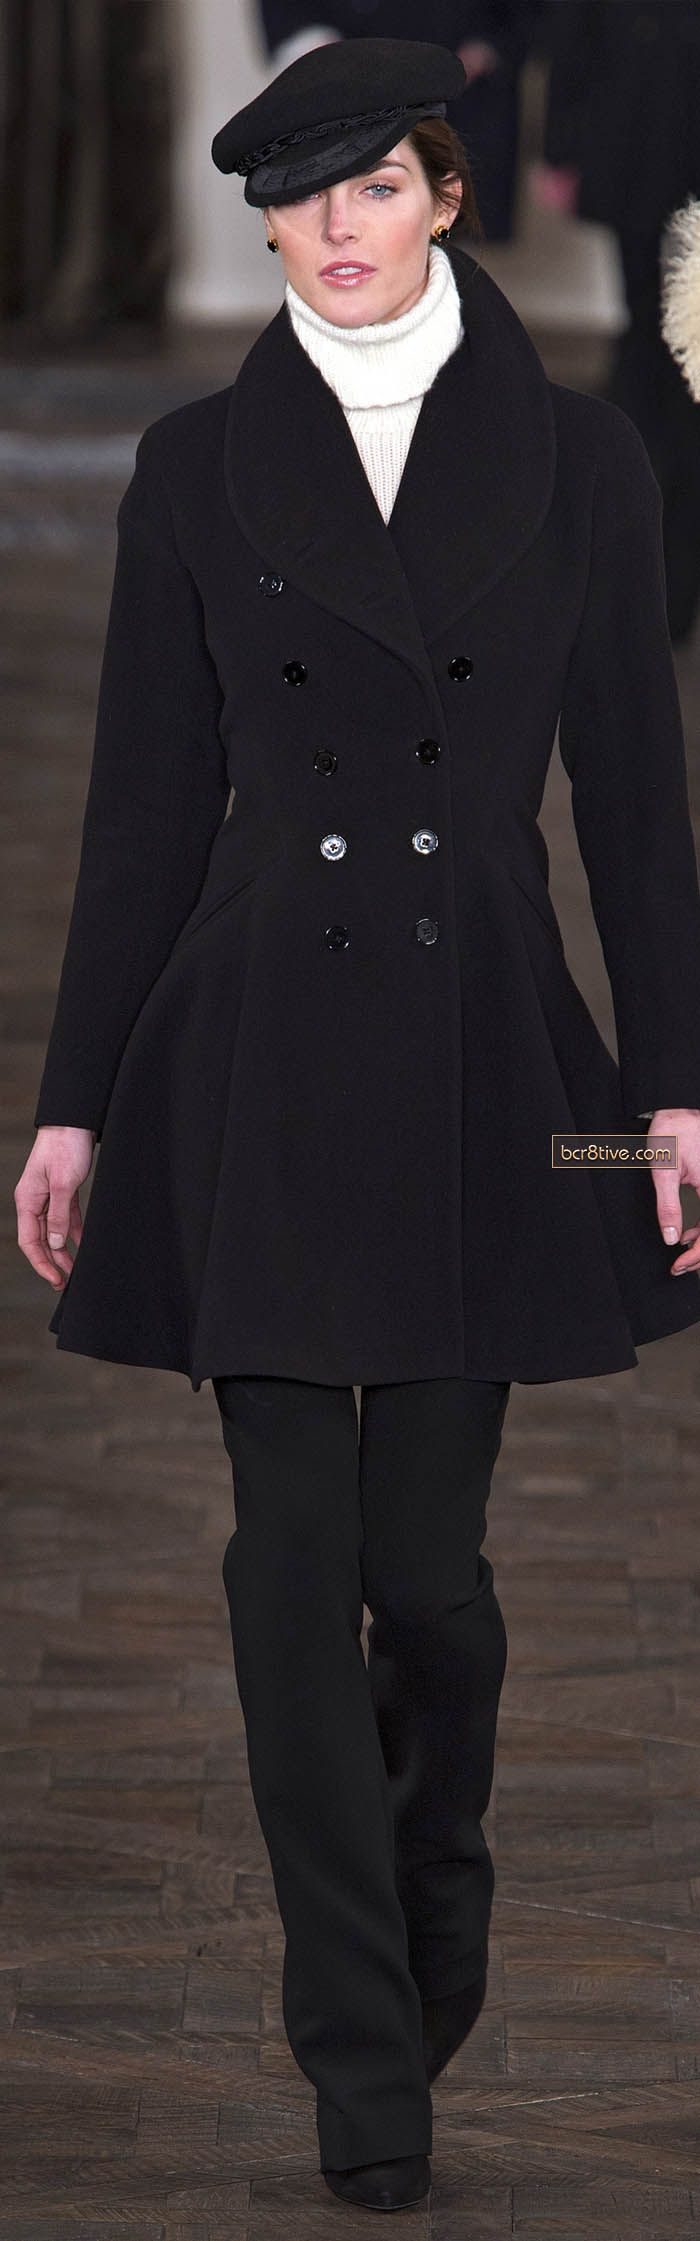 ralph lauren winter style guide